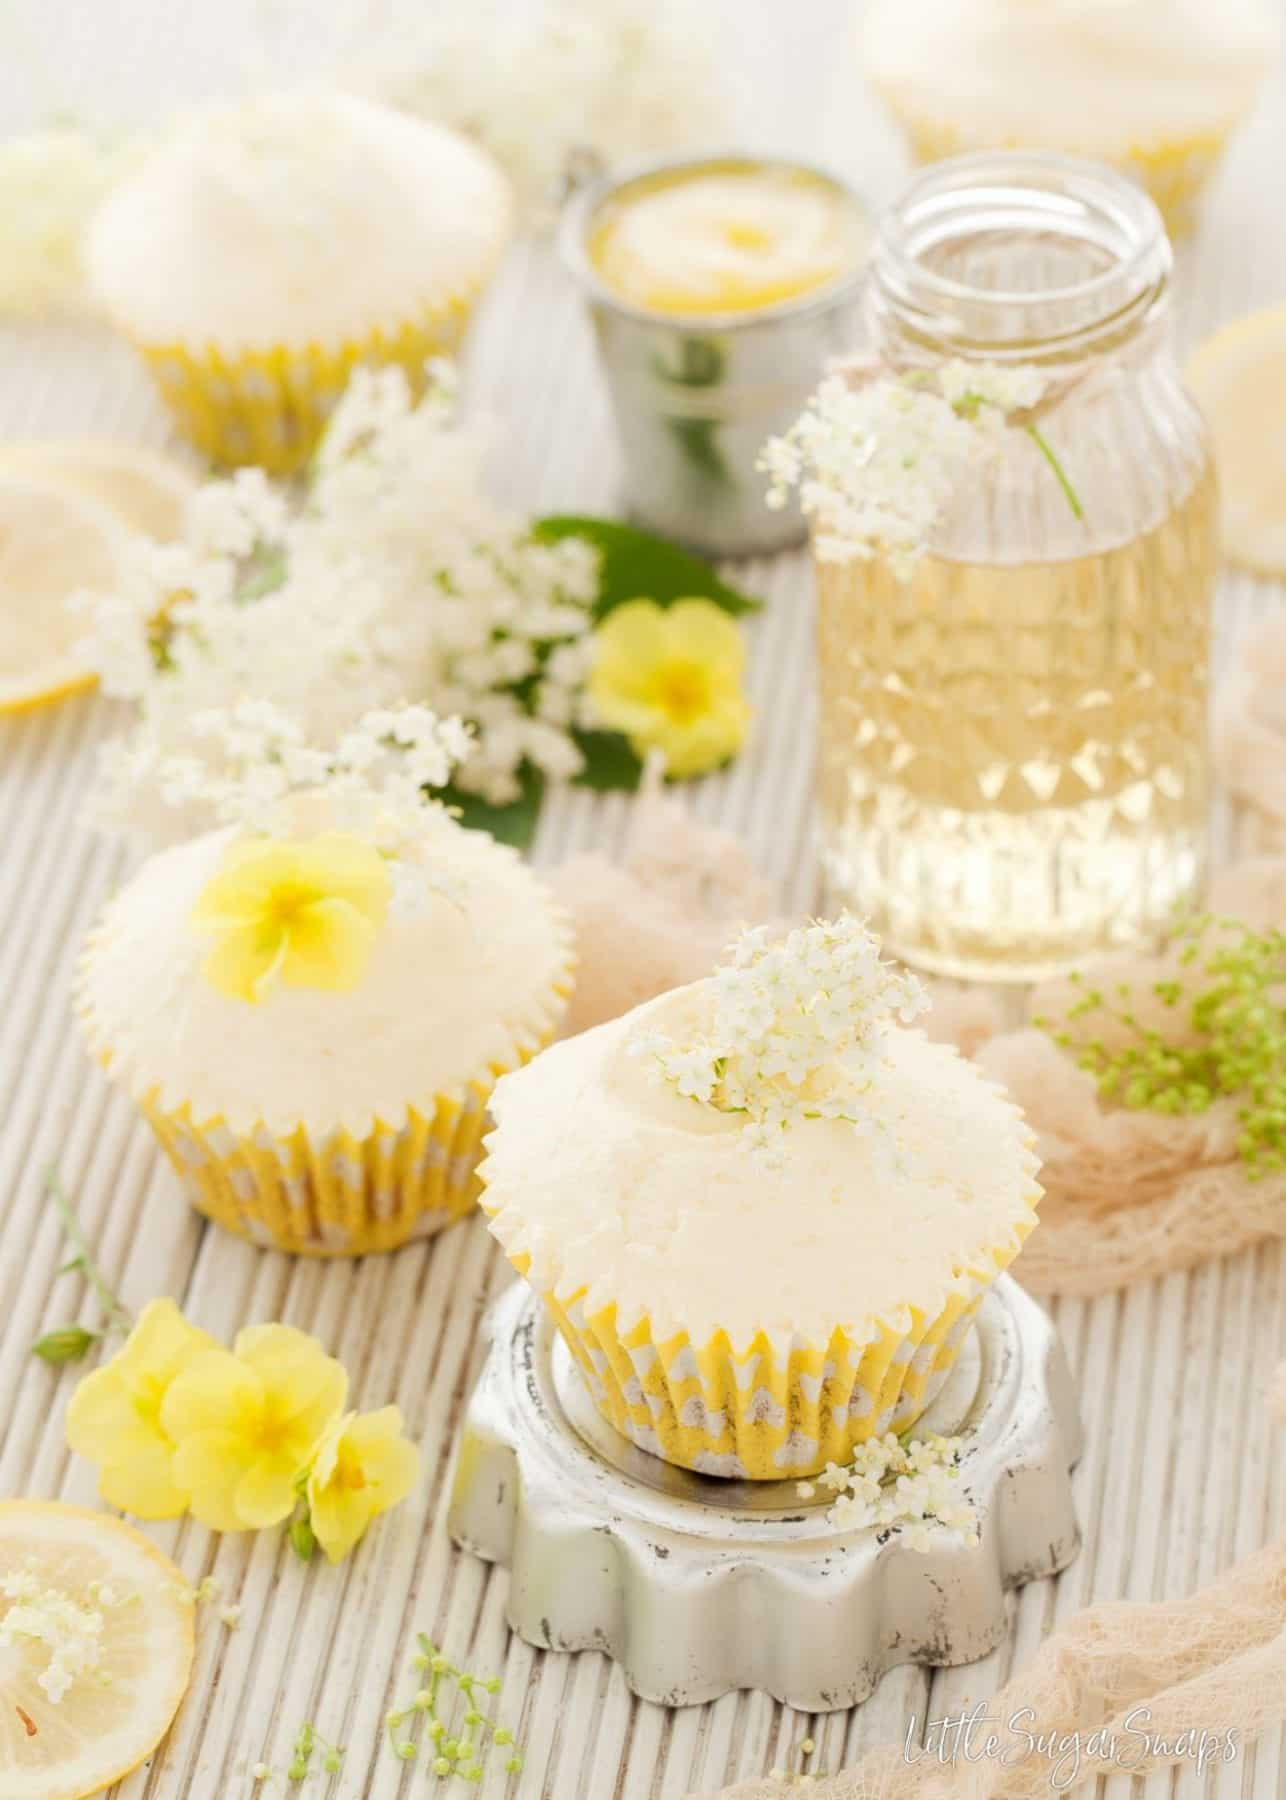 Vegan Lemon Elderflower Cupcakes